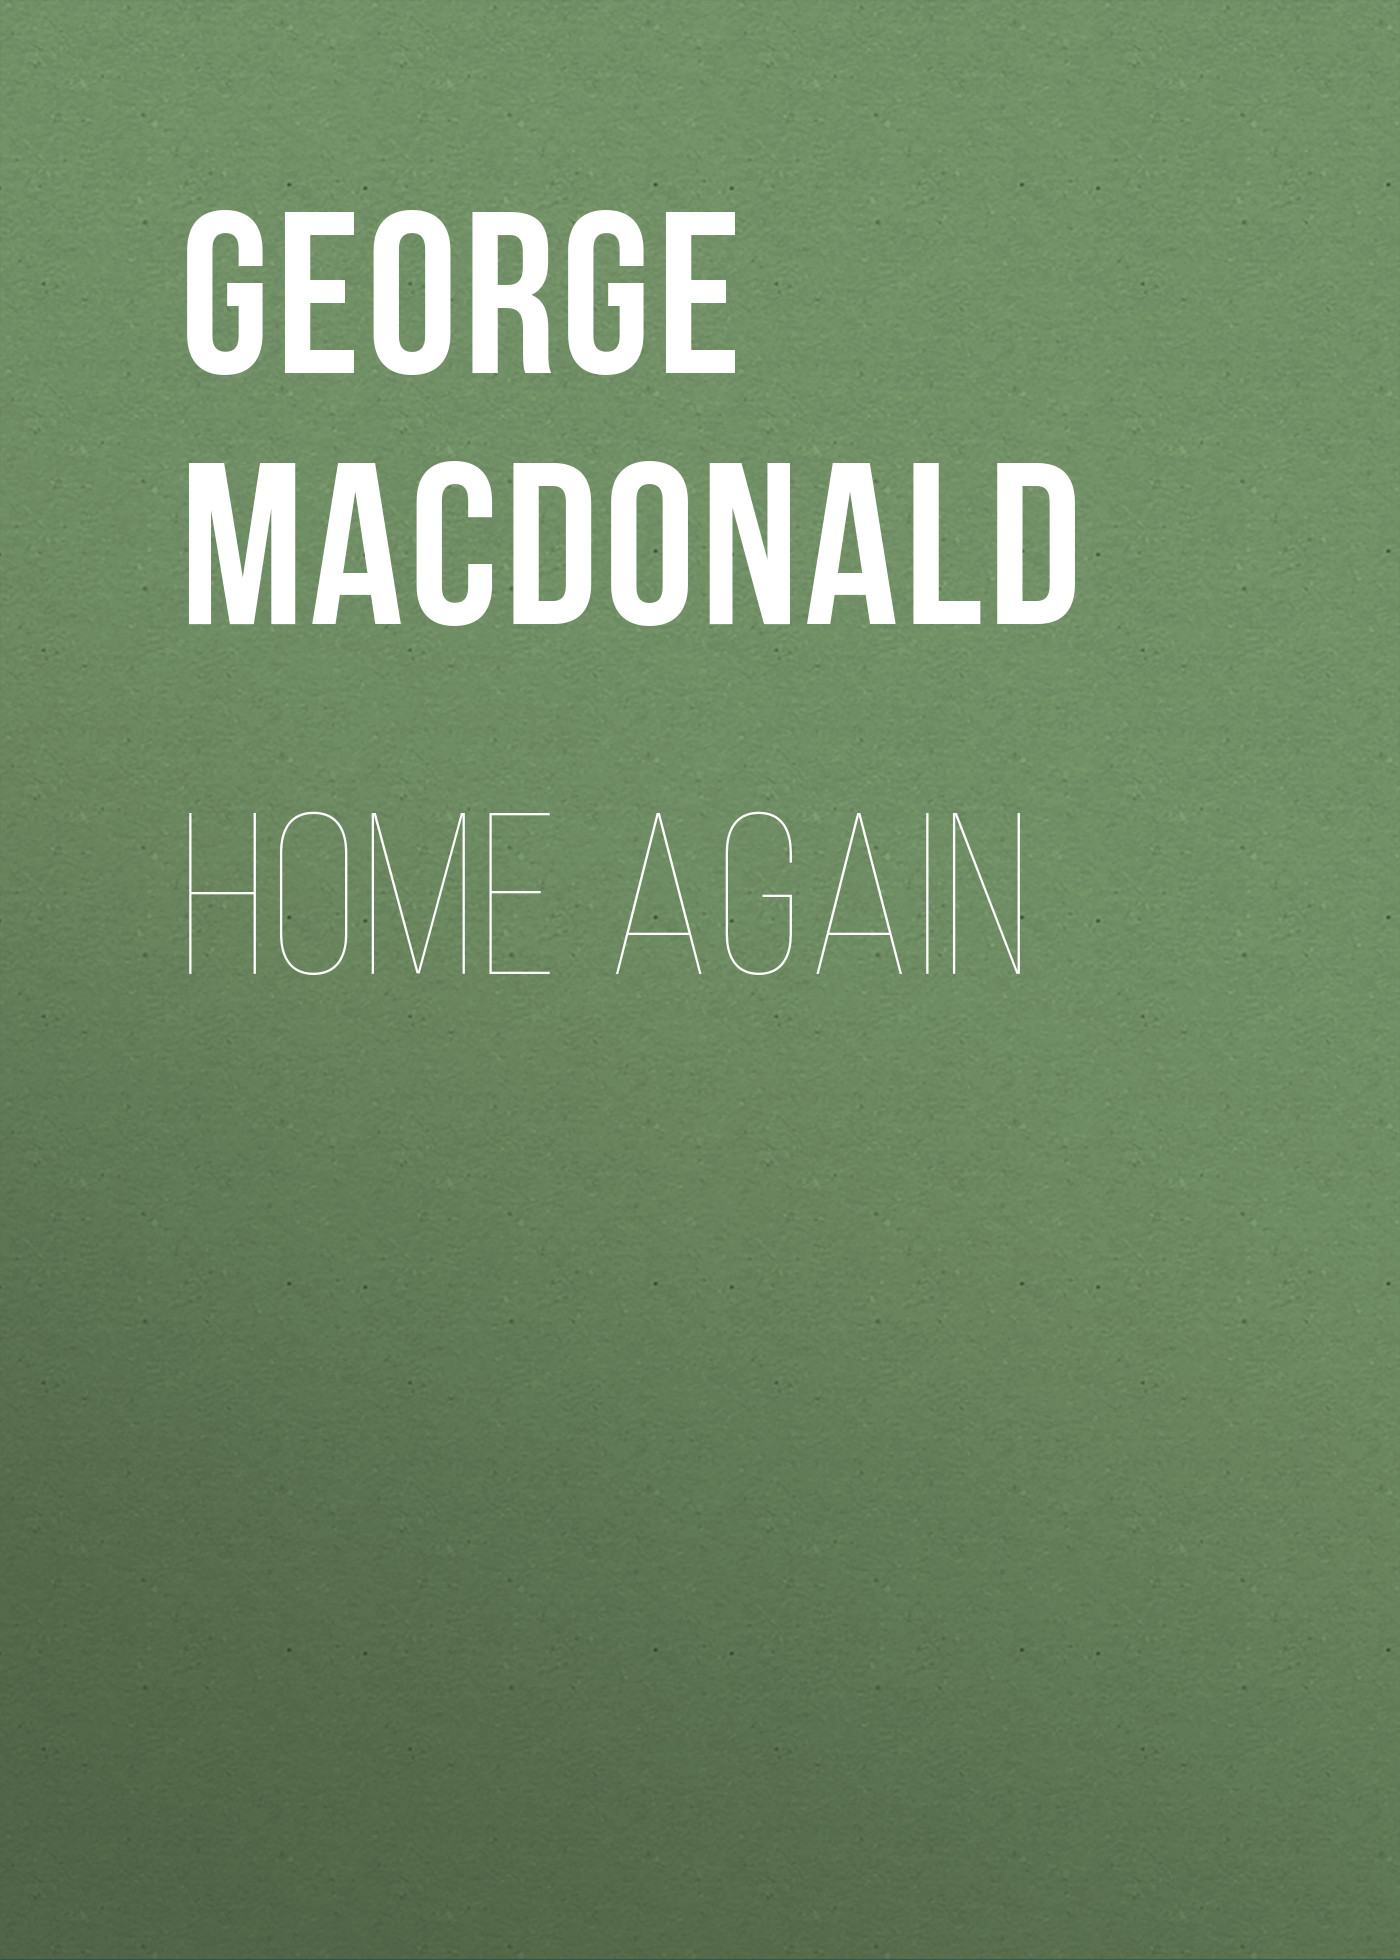 все цены на George MacDonald Home Again онлайн